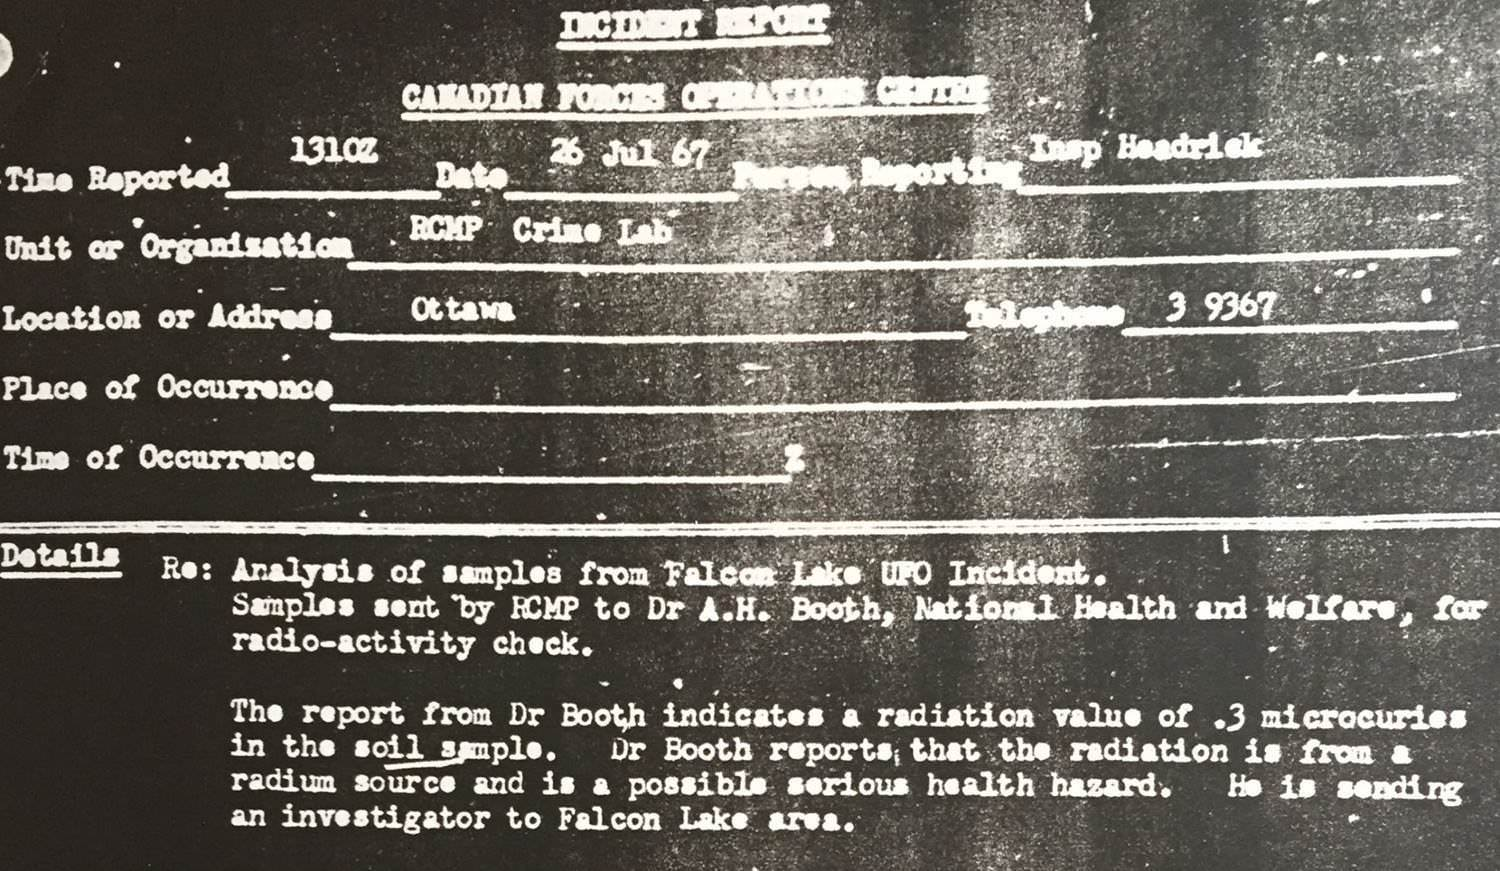 Soil analysis report from the Crime Lab of the Royal Canadian Mounted Police, July 1967. The sample showed a level of 0.3 microCuries, 'a possible serious health hazard.'